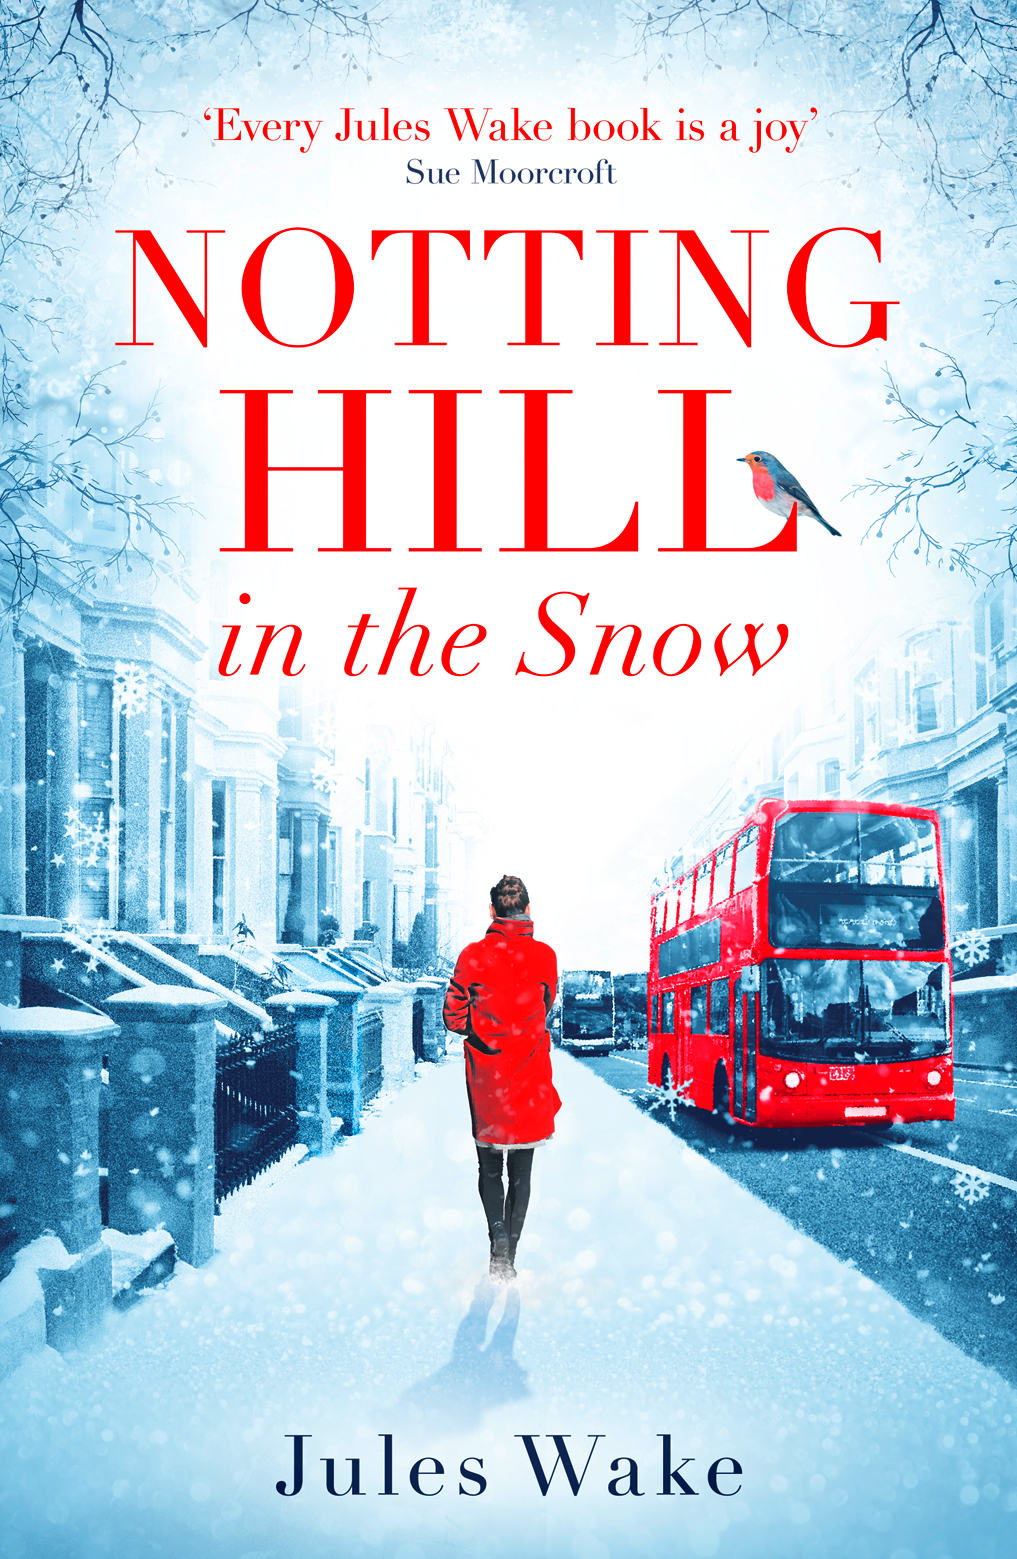 Notting Hill in the Snow by Jules Wake